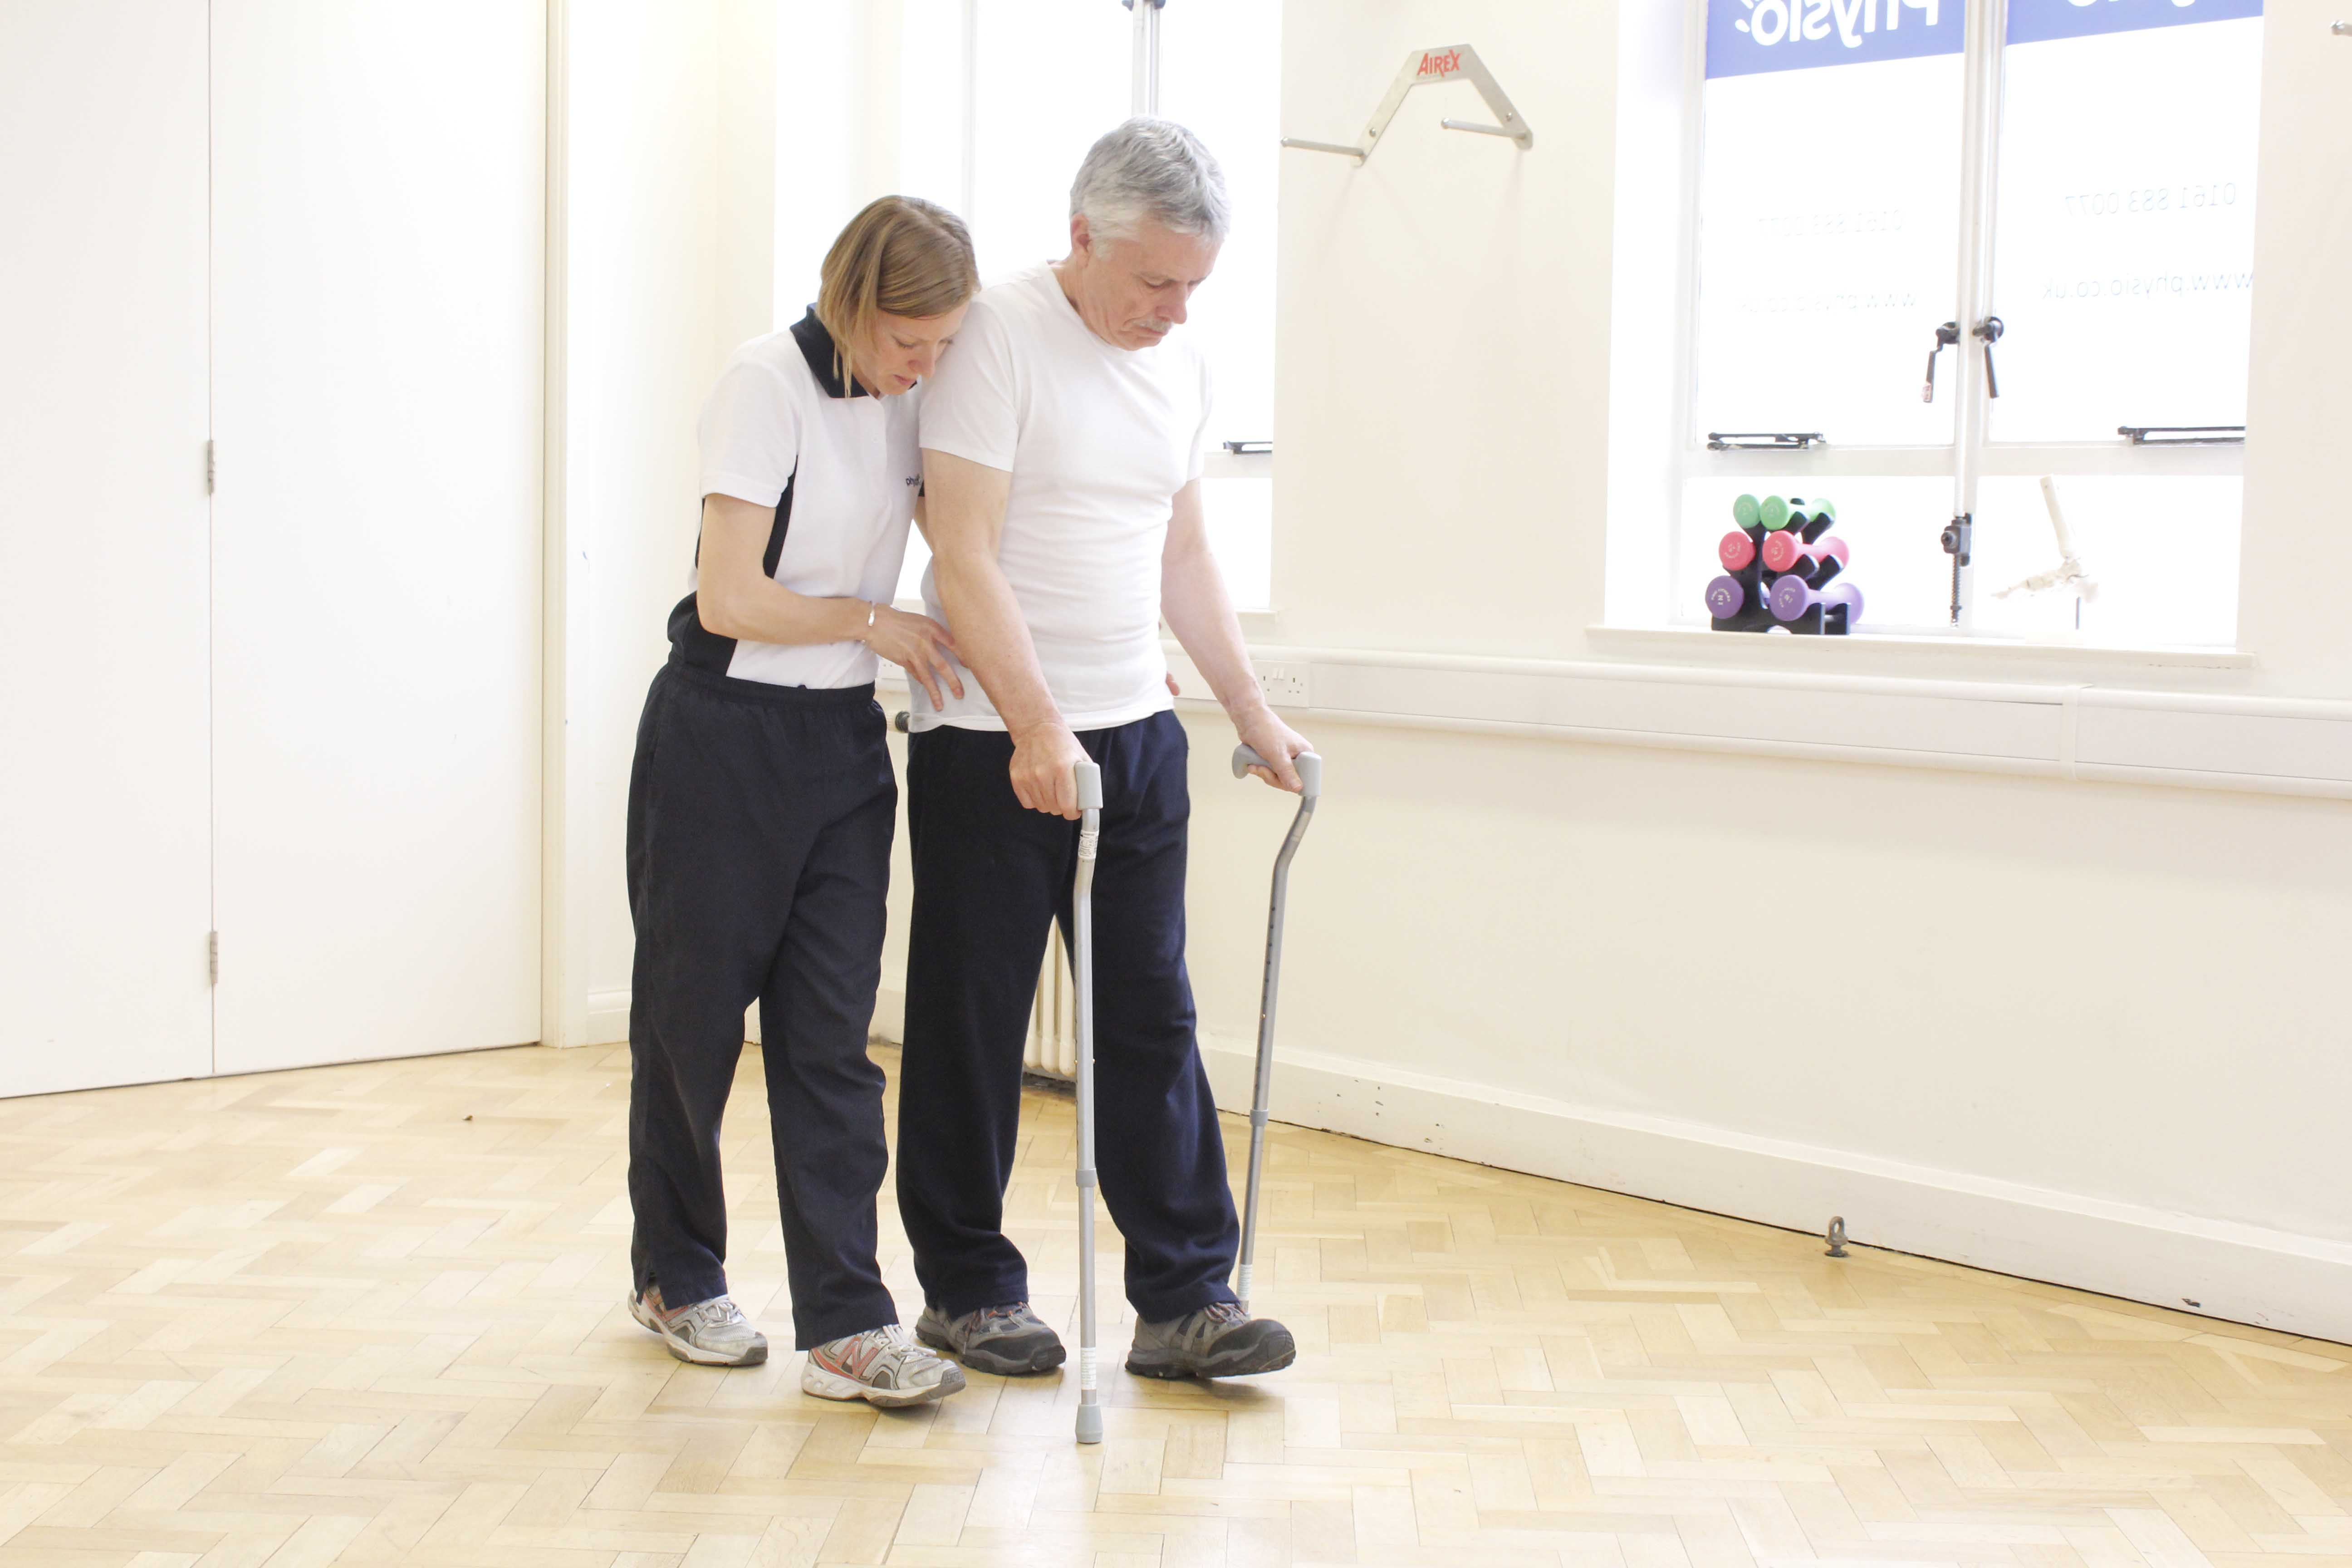 Mobilisation exercises using walking sticks supervised by a neuro physiotherapist